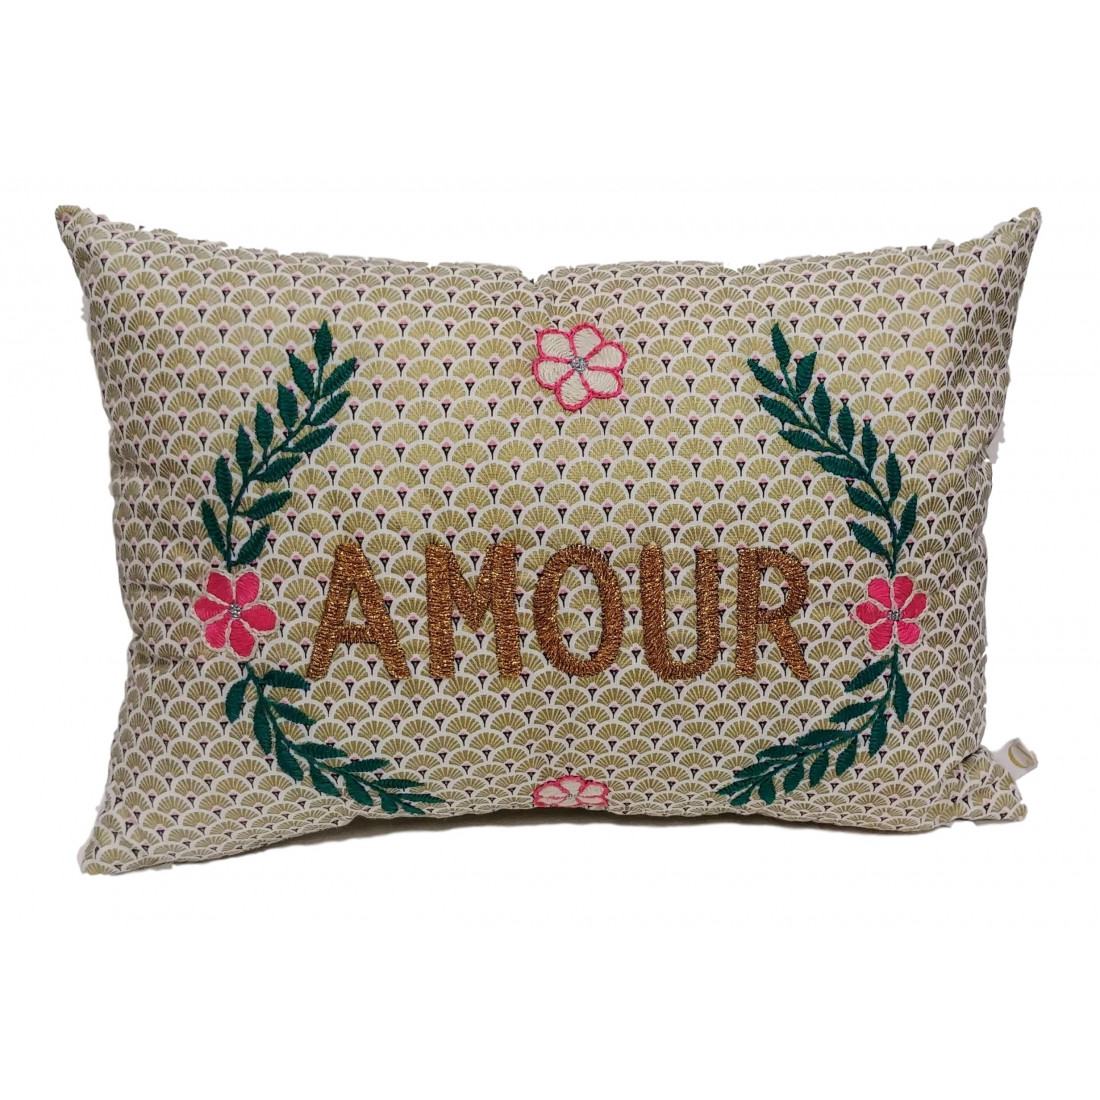 Brodé Embroidered Vintage Cushion Love